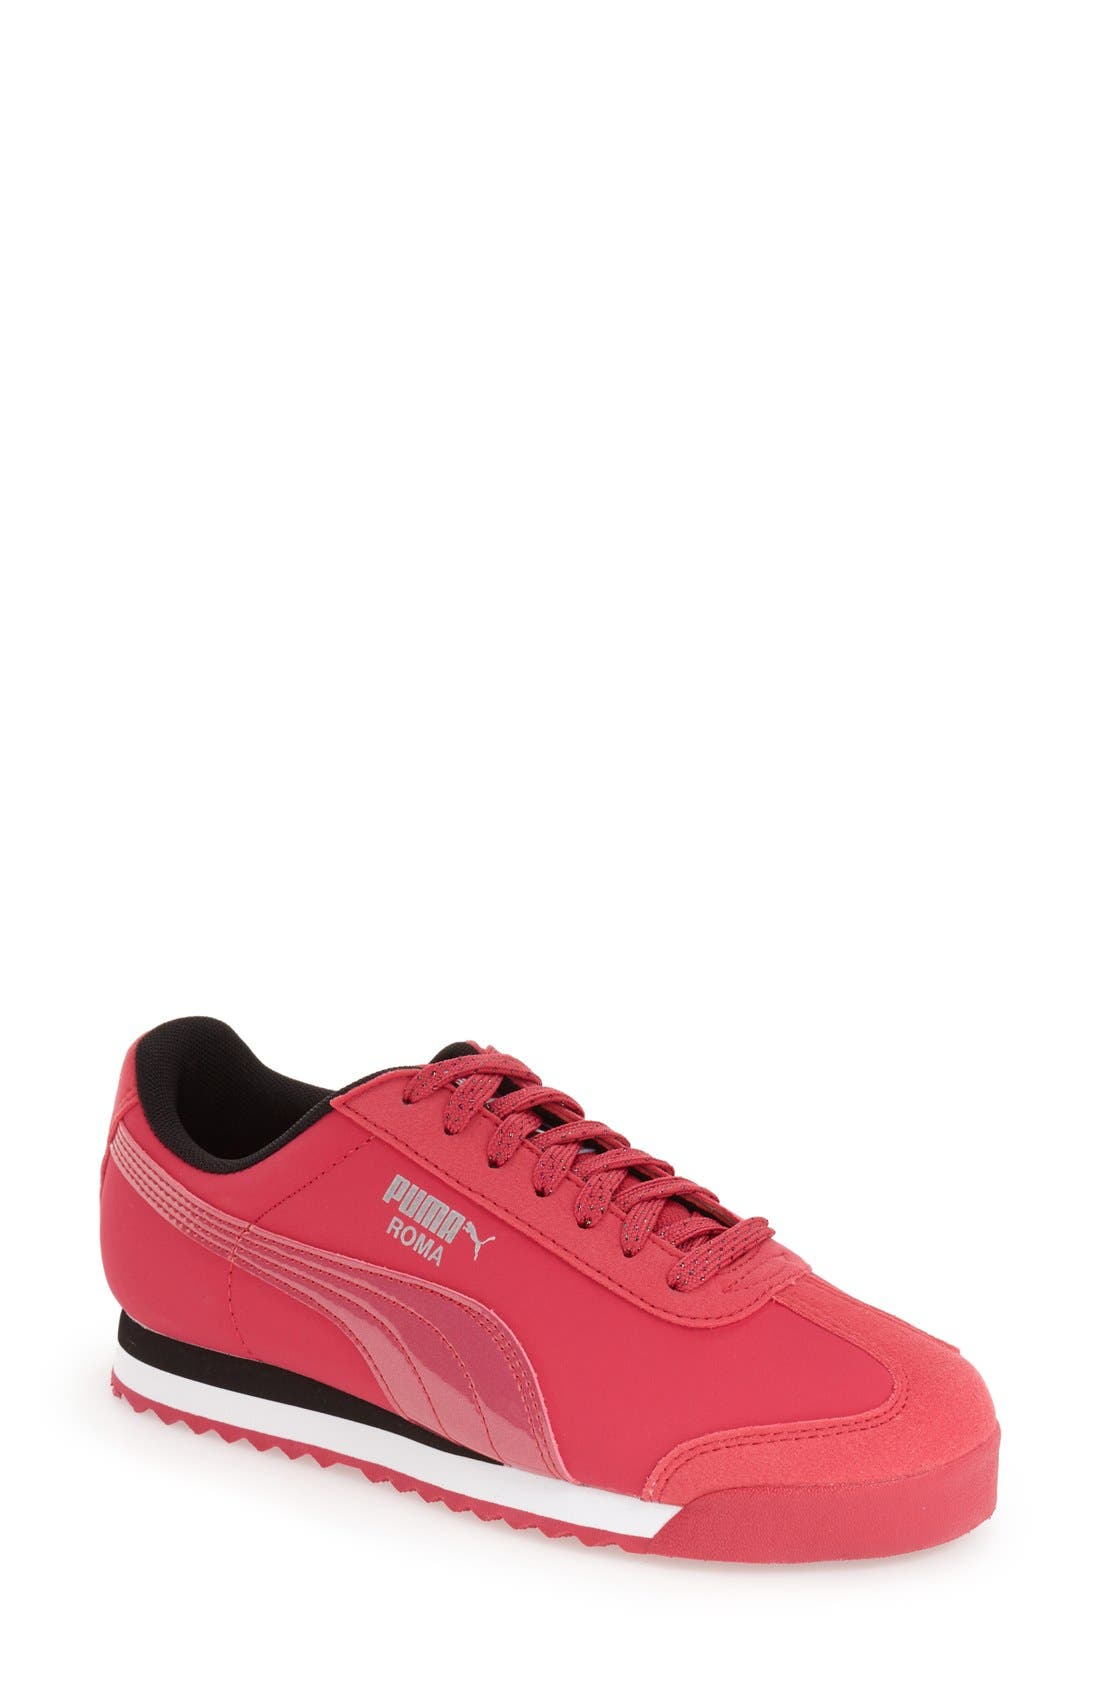 Alternate Image 1 Selected - PUMA 'Roma' Sneaker (Women)